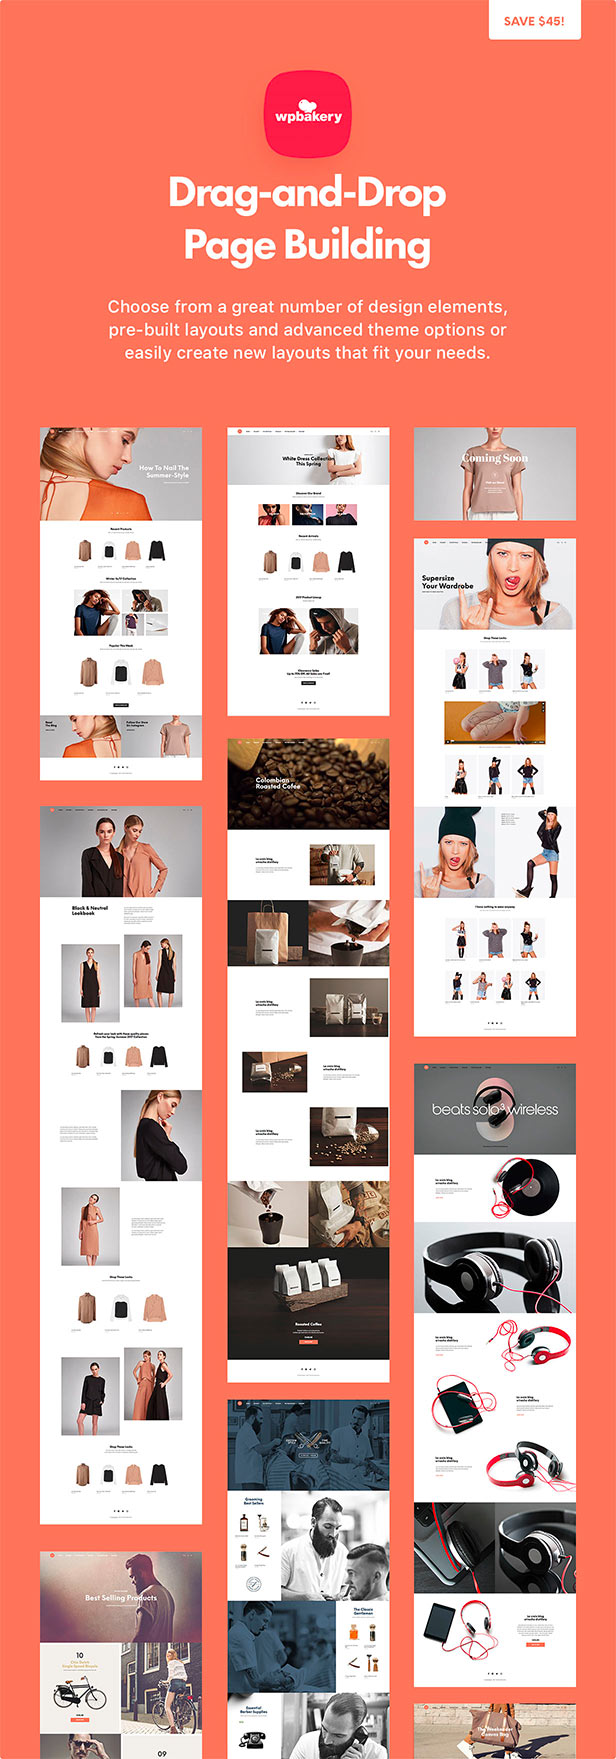 Shopkeeper - eCommerce WordPress Theme for WooCommerce - 33